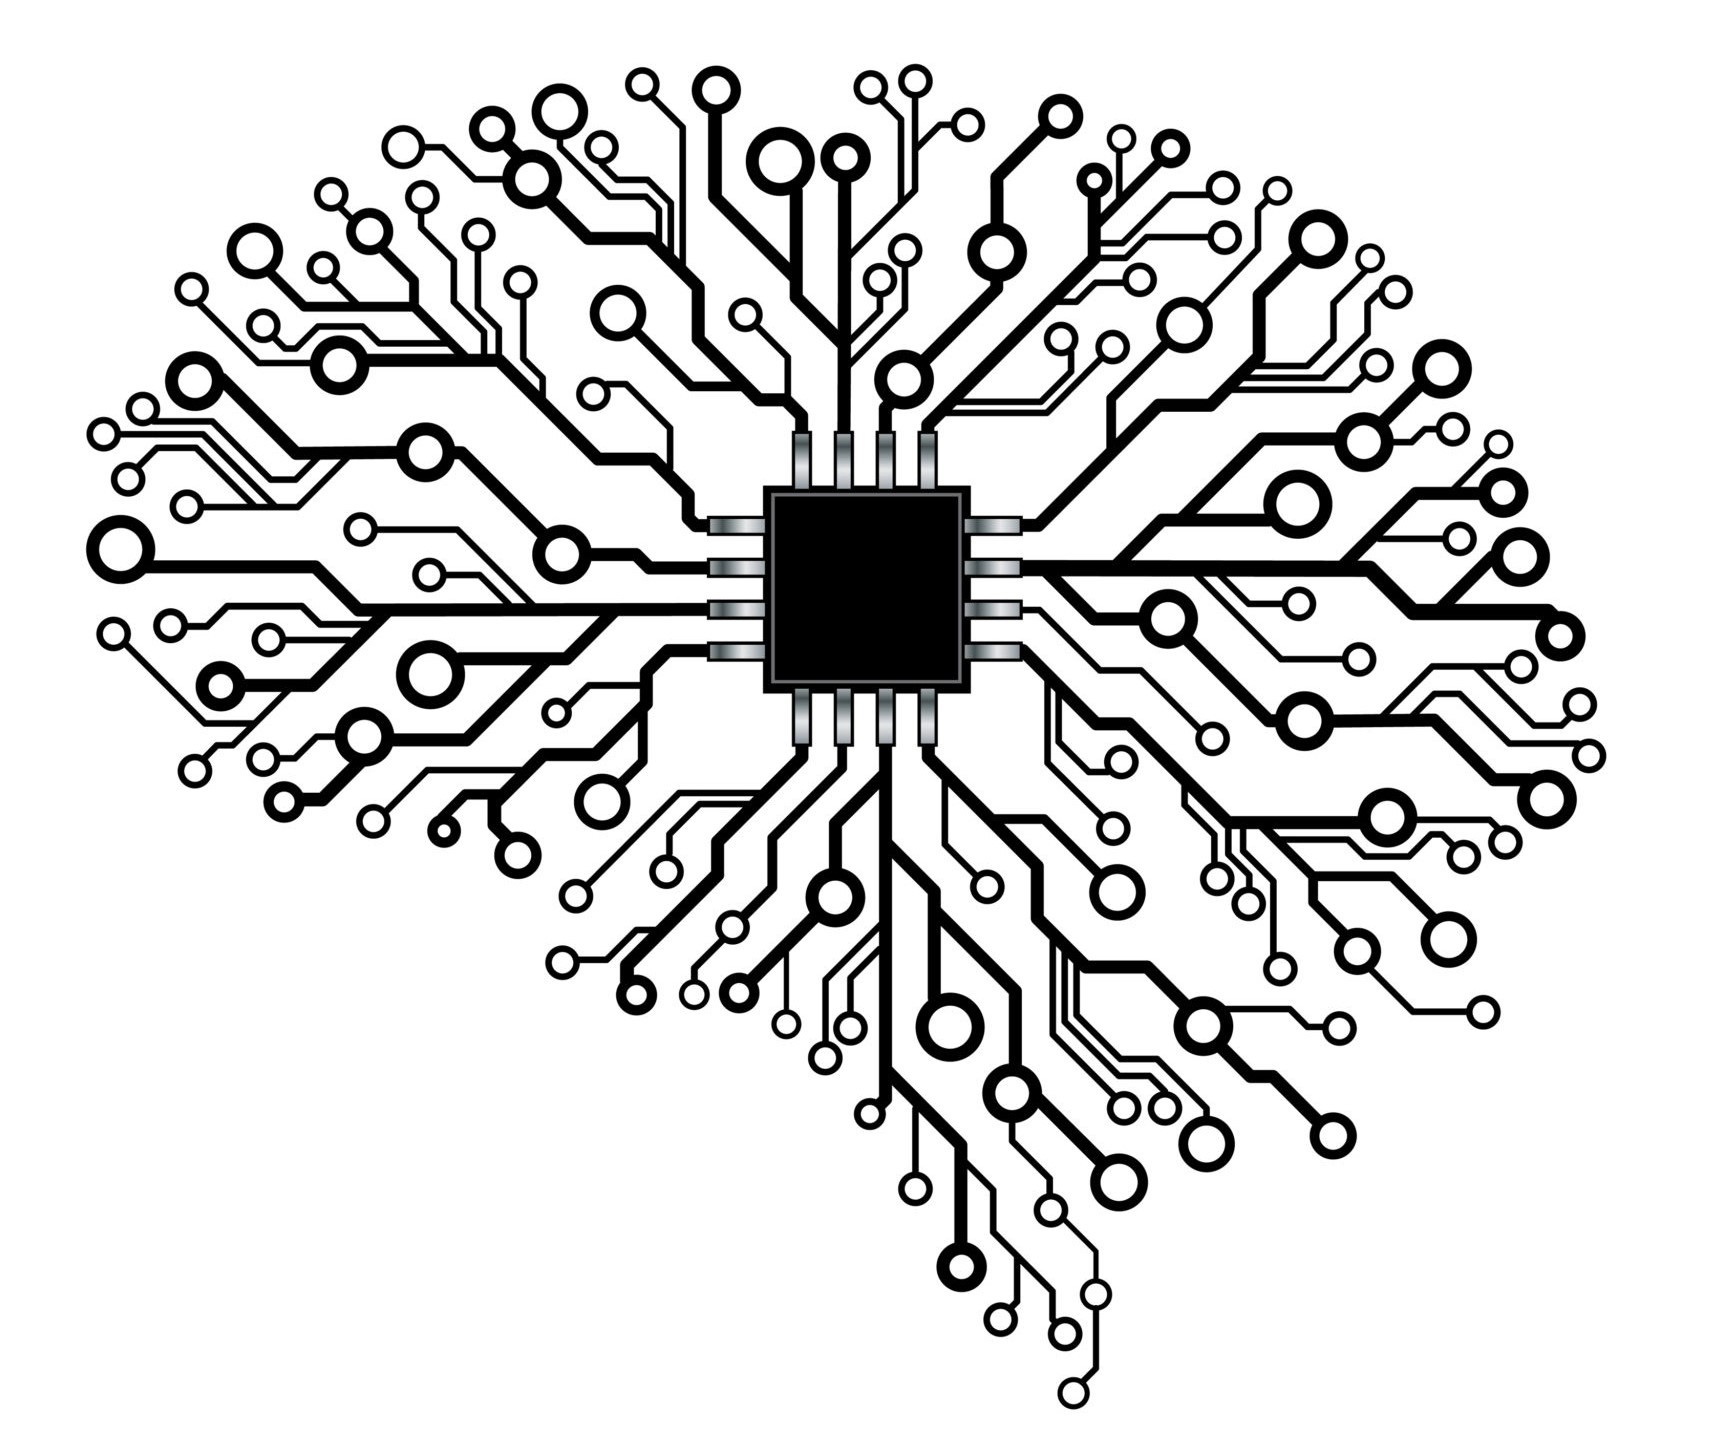 Neuromorphic Hardware Trying To Put Brain Into Chips